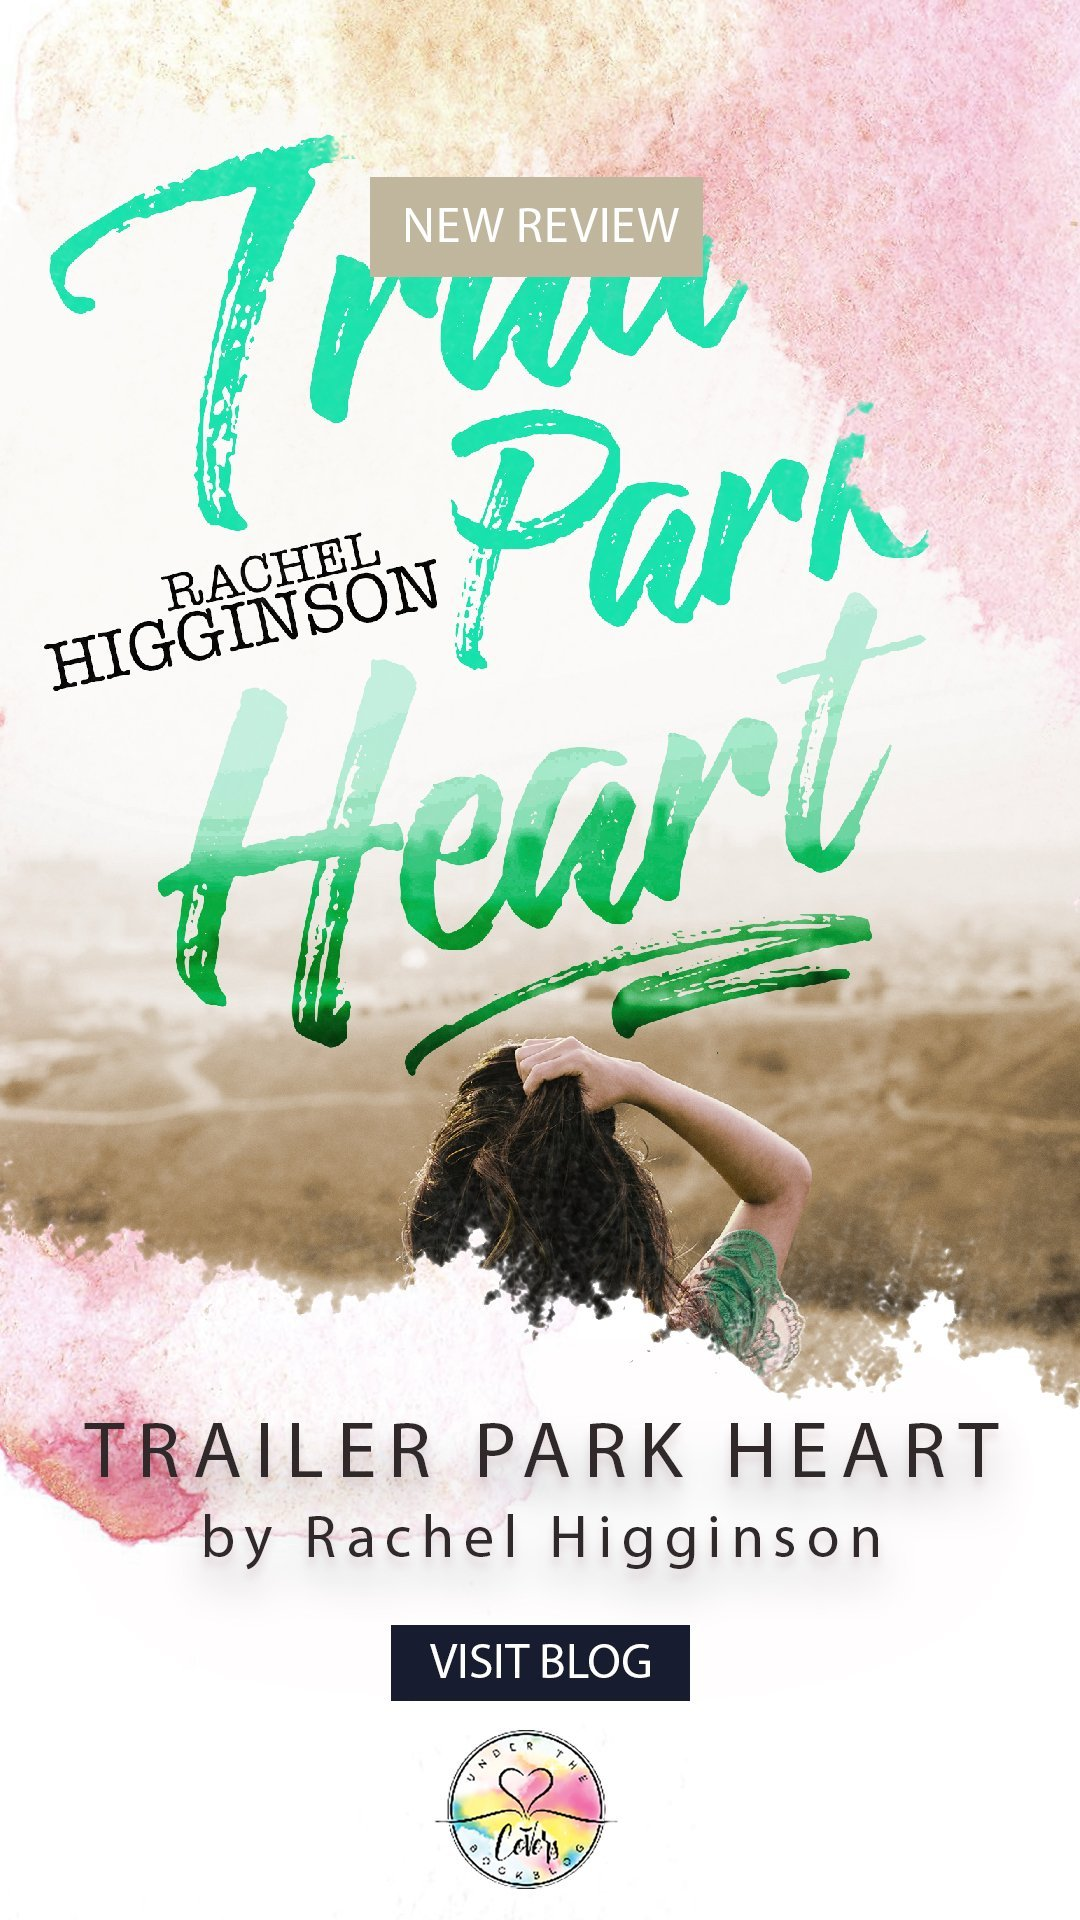 ARC Review: Trailer Park Heart by Rachel Higginson